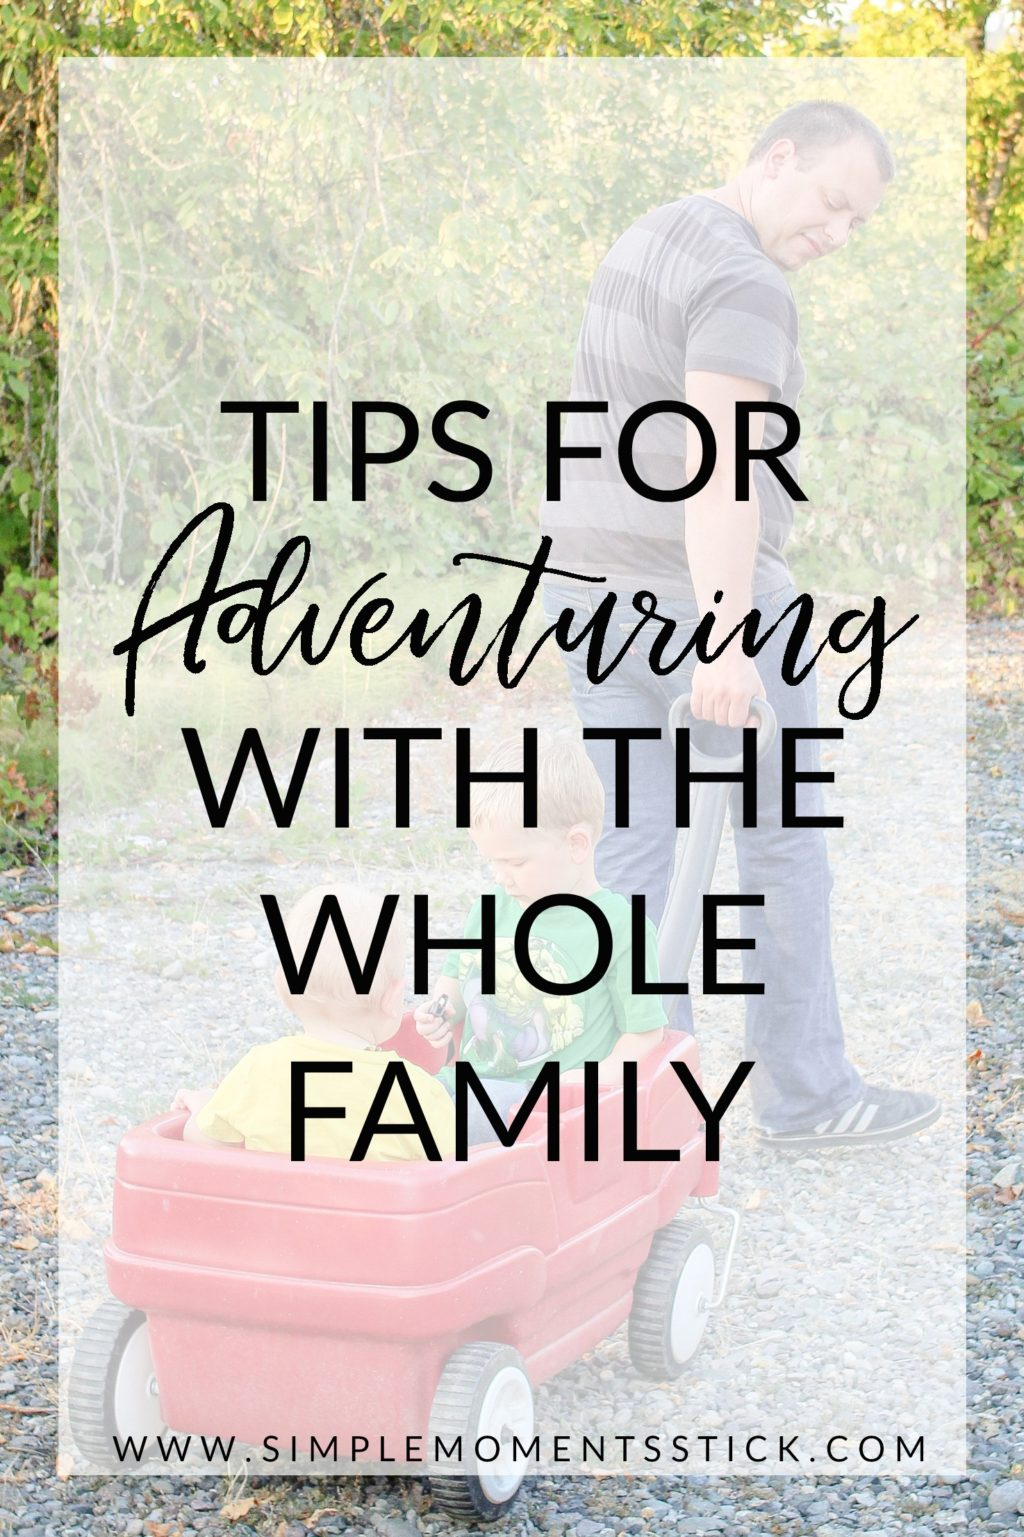 Fantastic adventure trips for families!